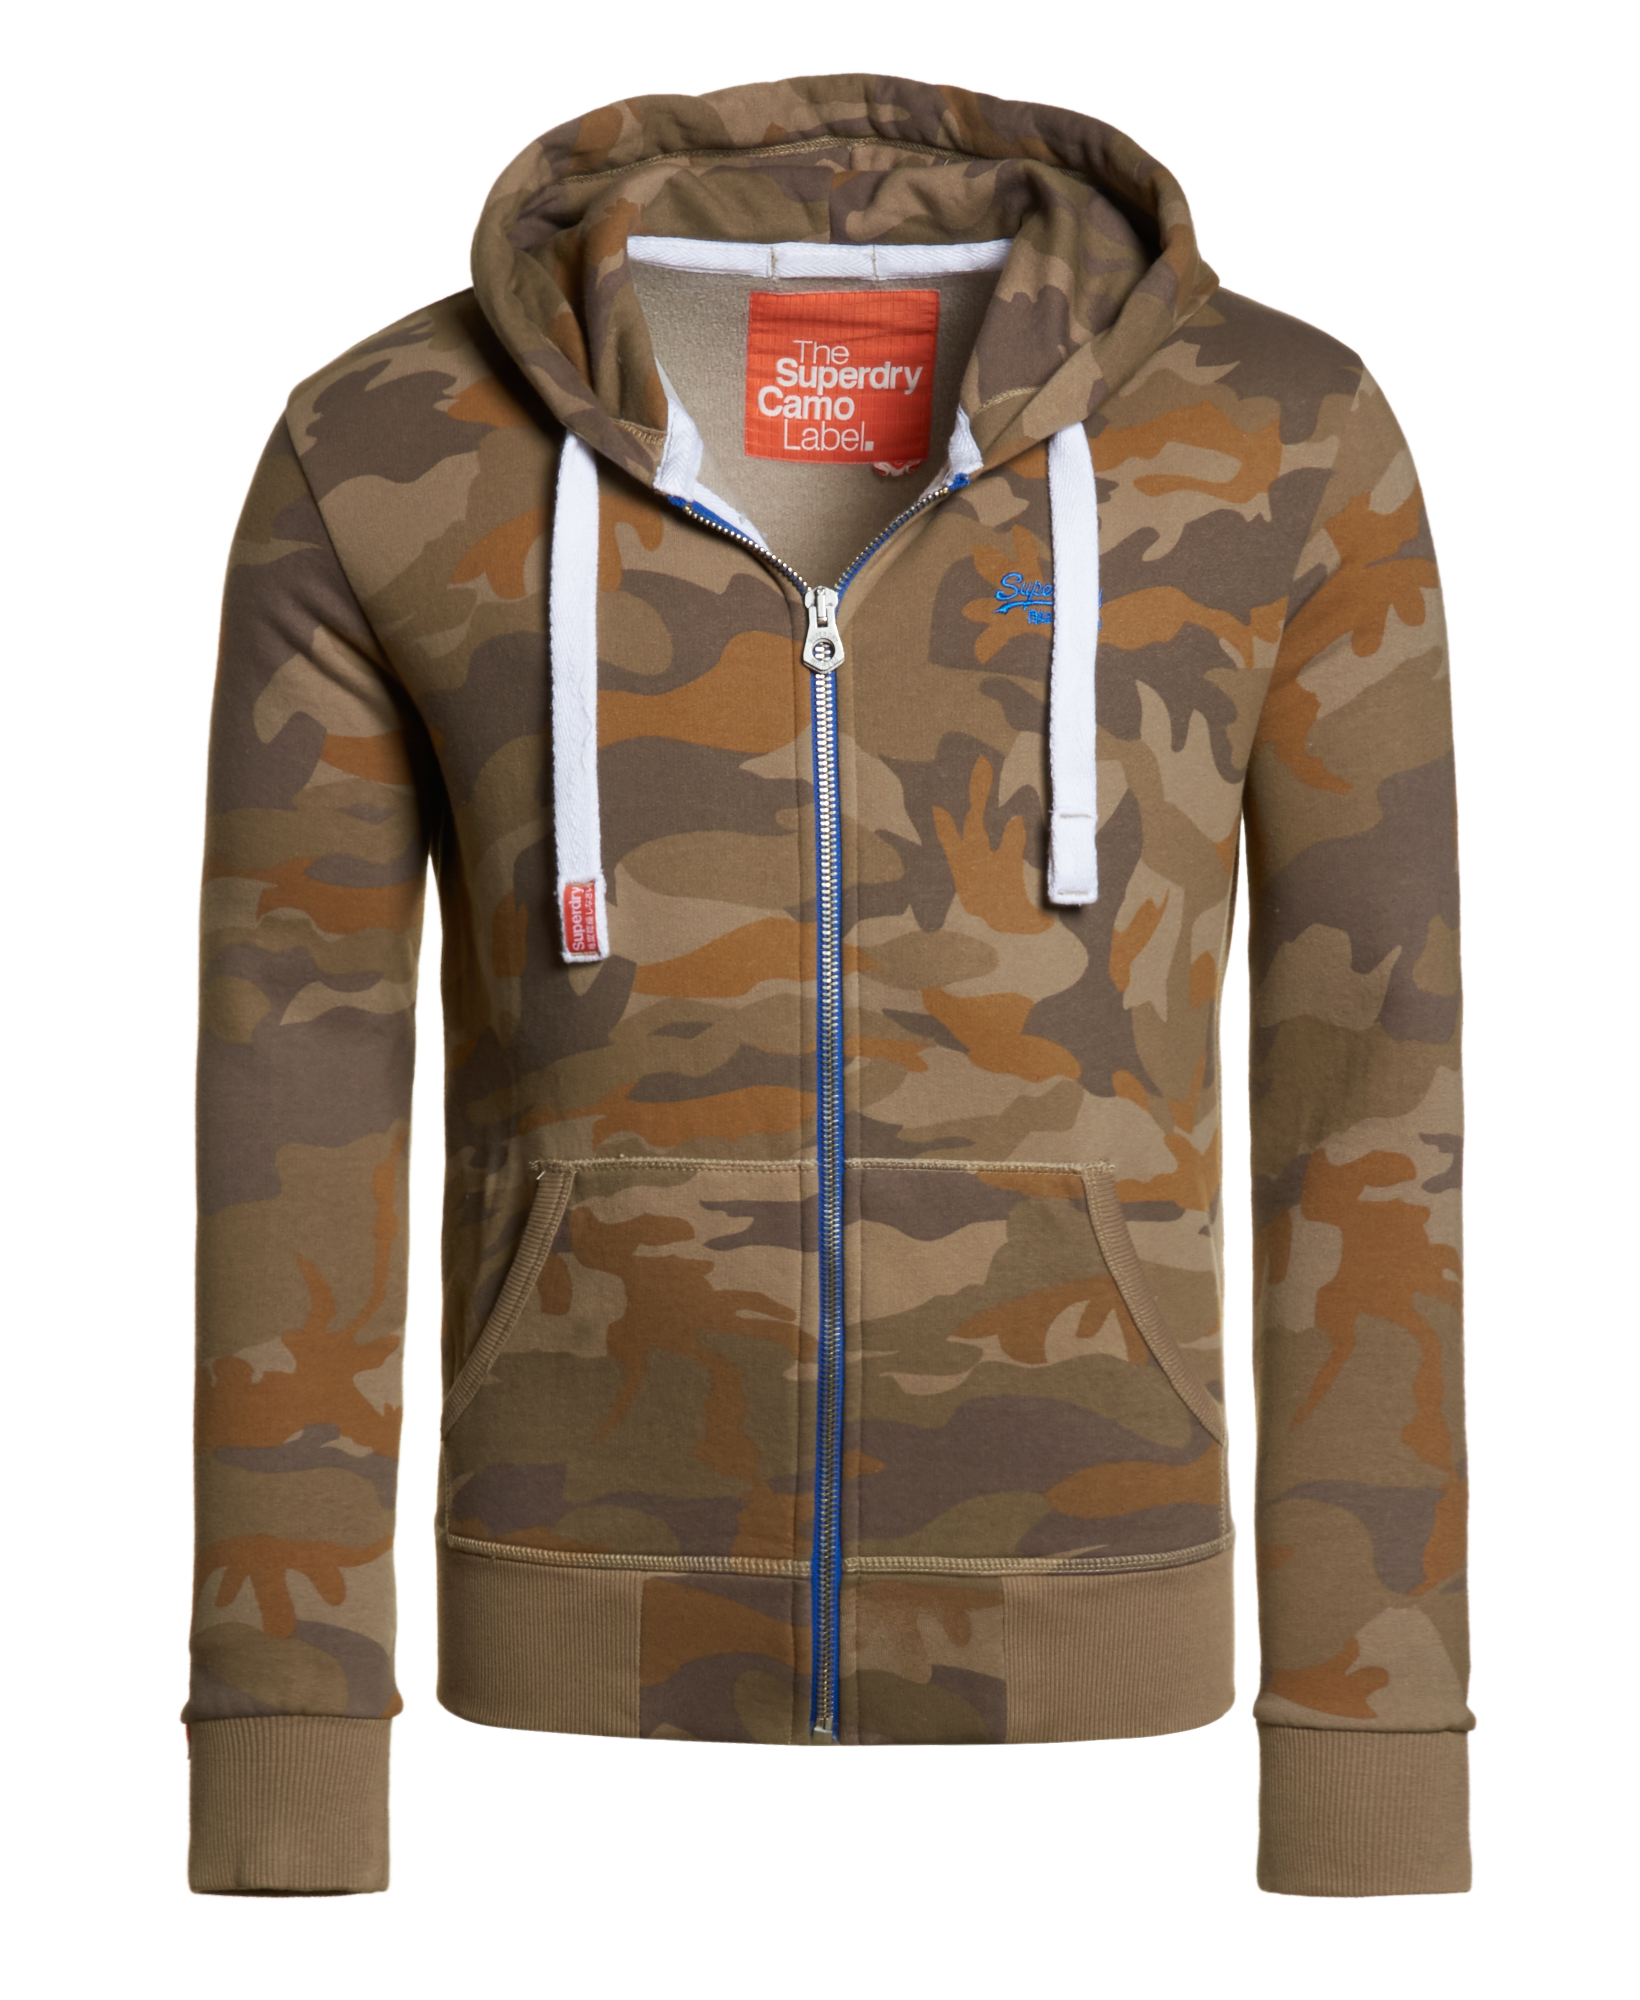 neuer herren superdry camo label zip hoodie ejector camo. Black Bedroom Furniture Sets. Home Design Ideas